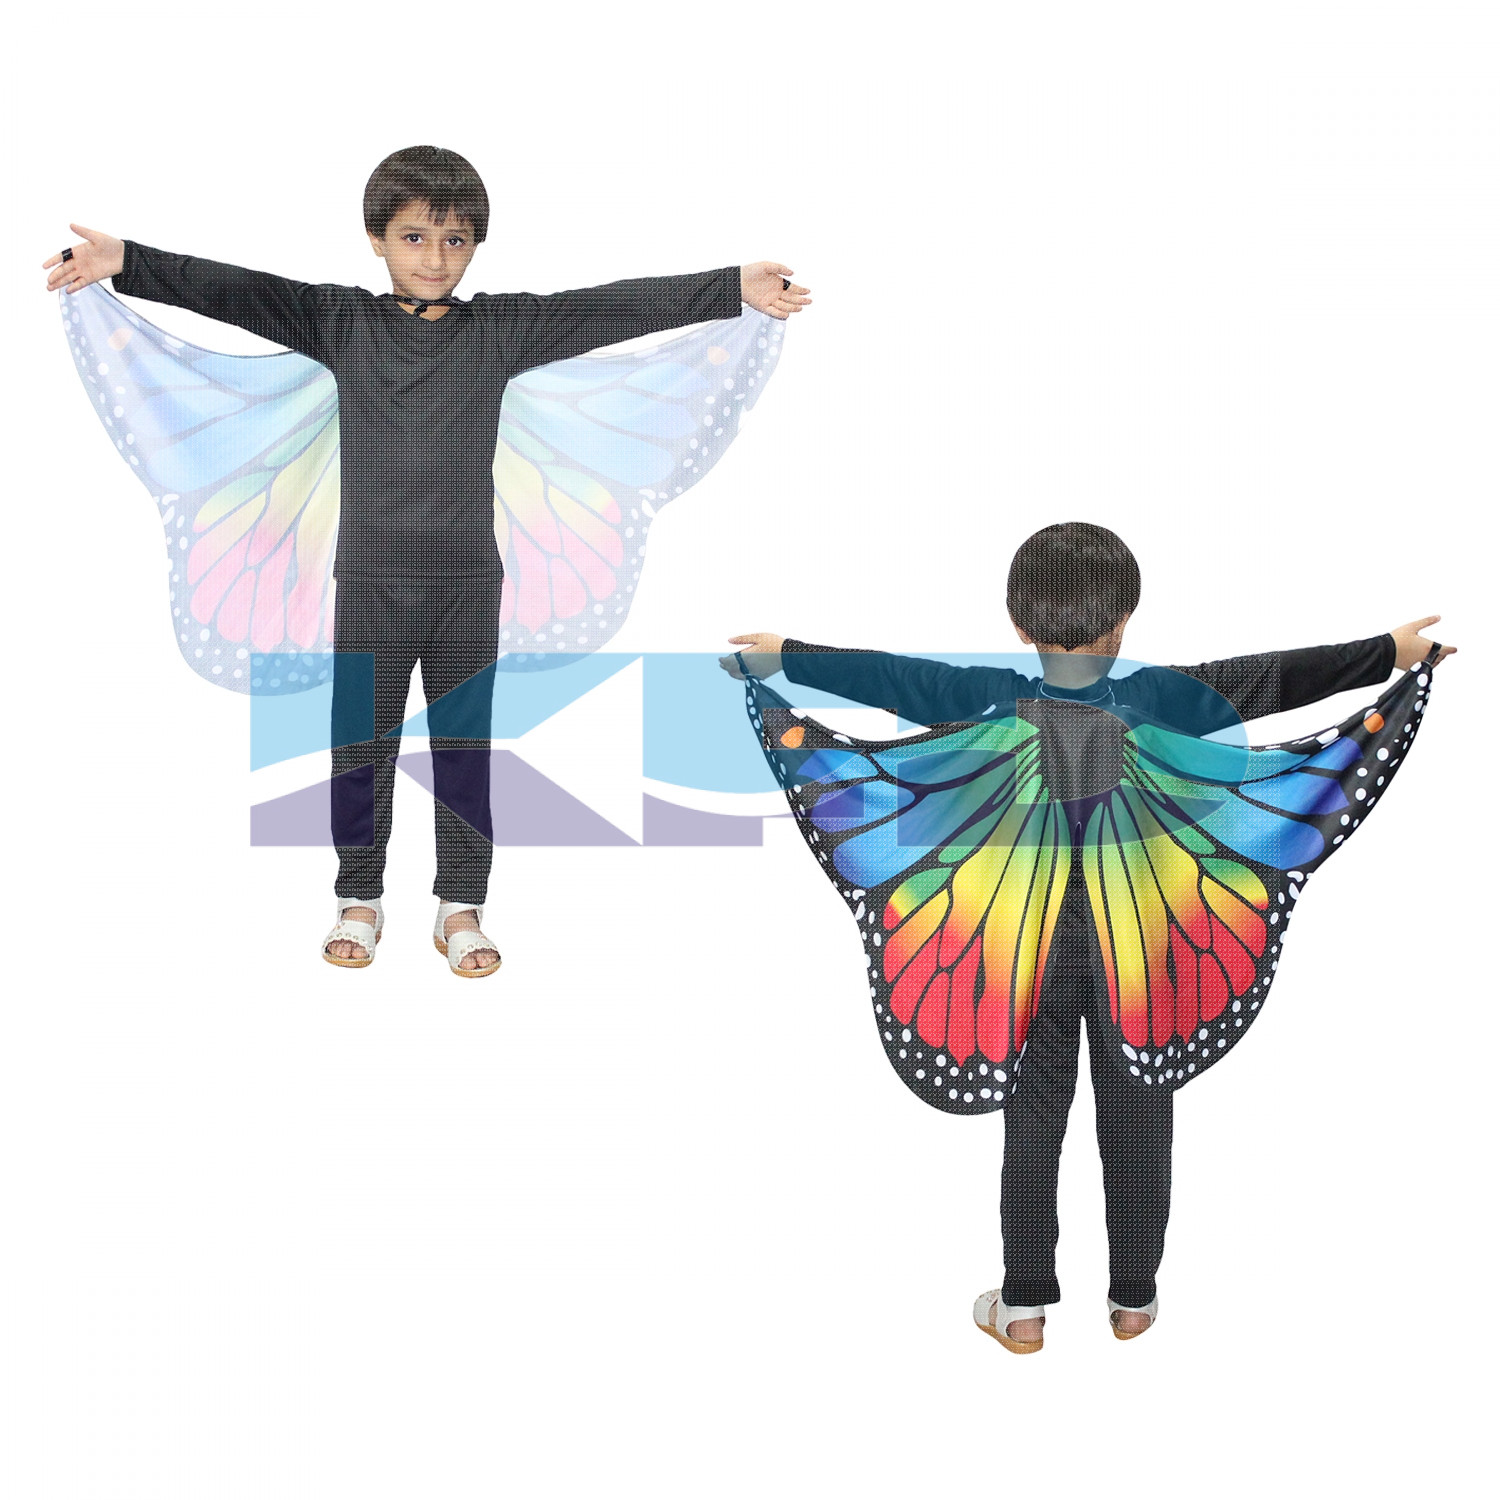 Dance Fairy Belly Dance Wings/Butterfly Wings/butterfly wings fabric/Egypt Belly Soft Fabric Wings Dancing Costume/For Kids Annual function/Theme Party/Competition/Stage Shows/Birthday Party Dress